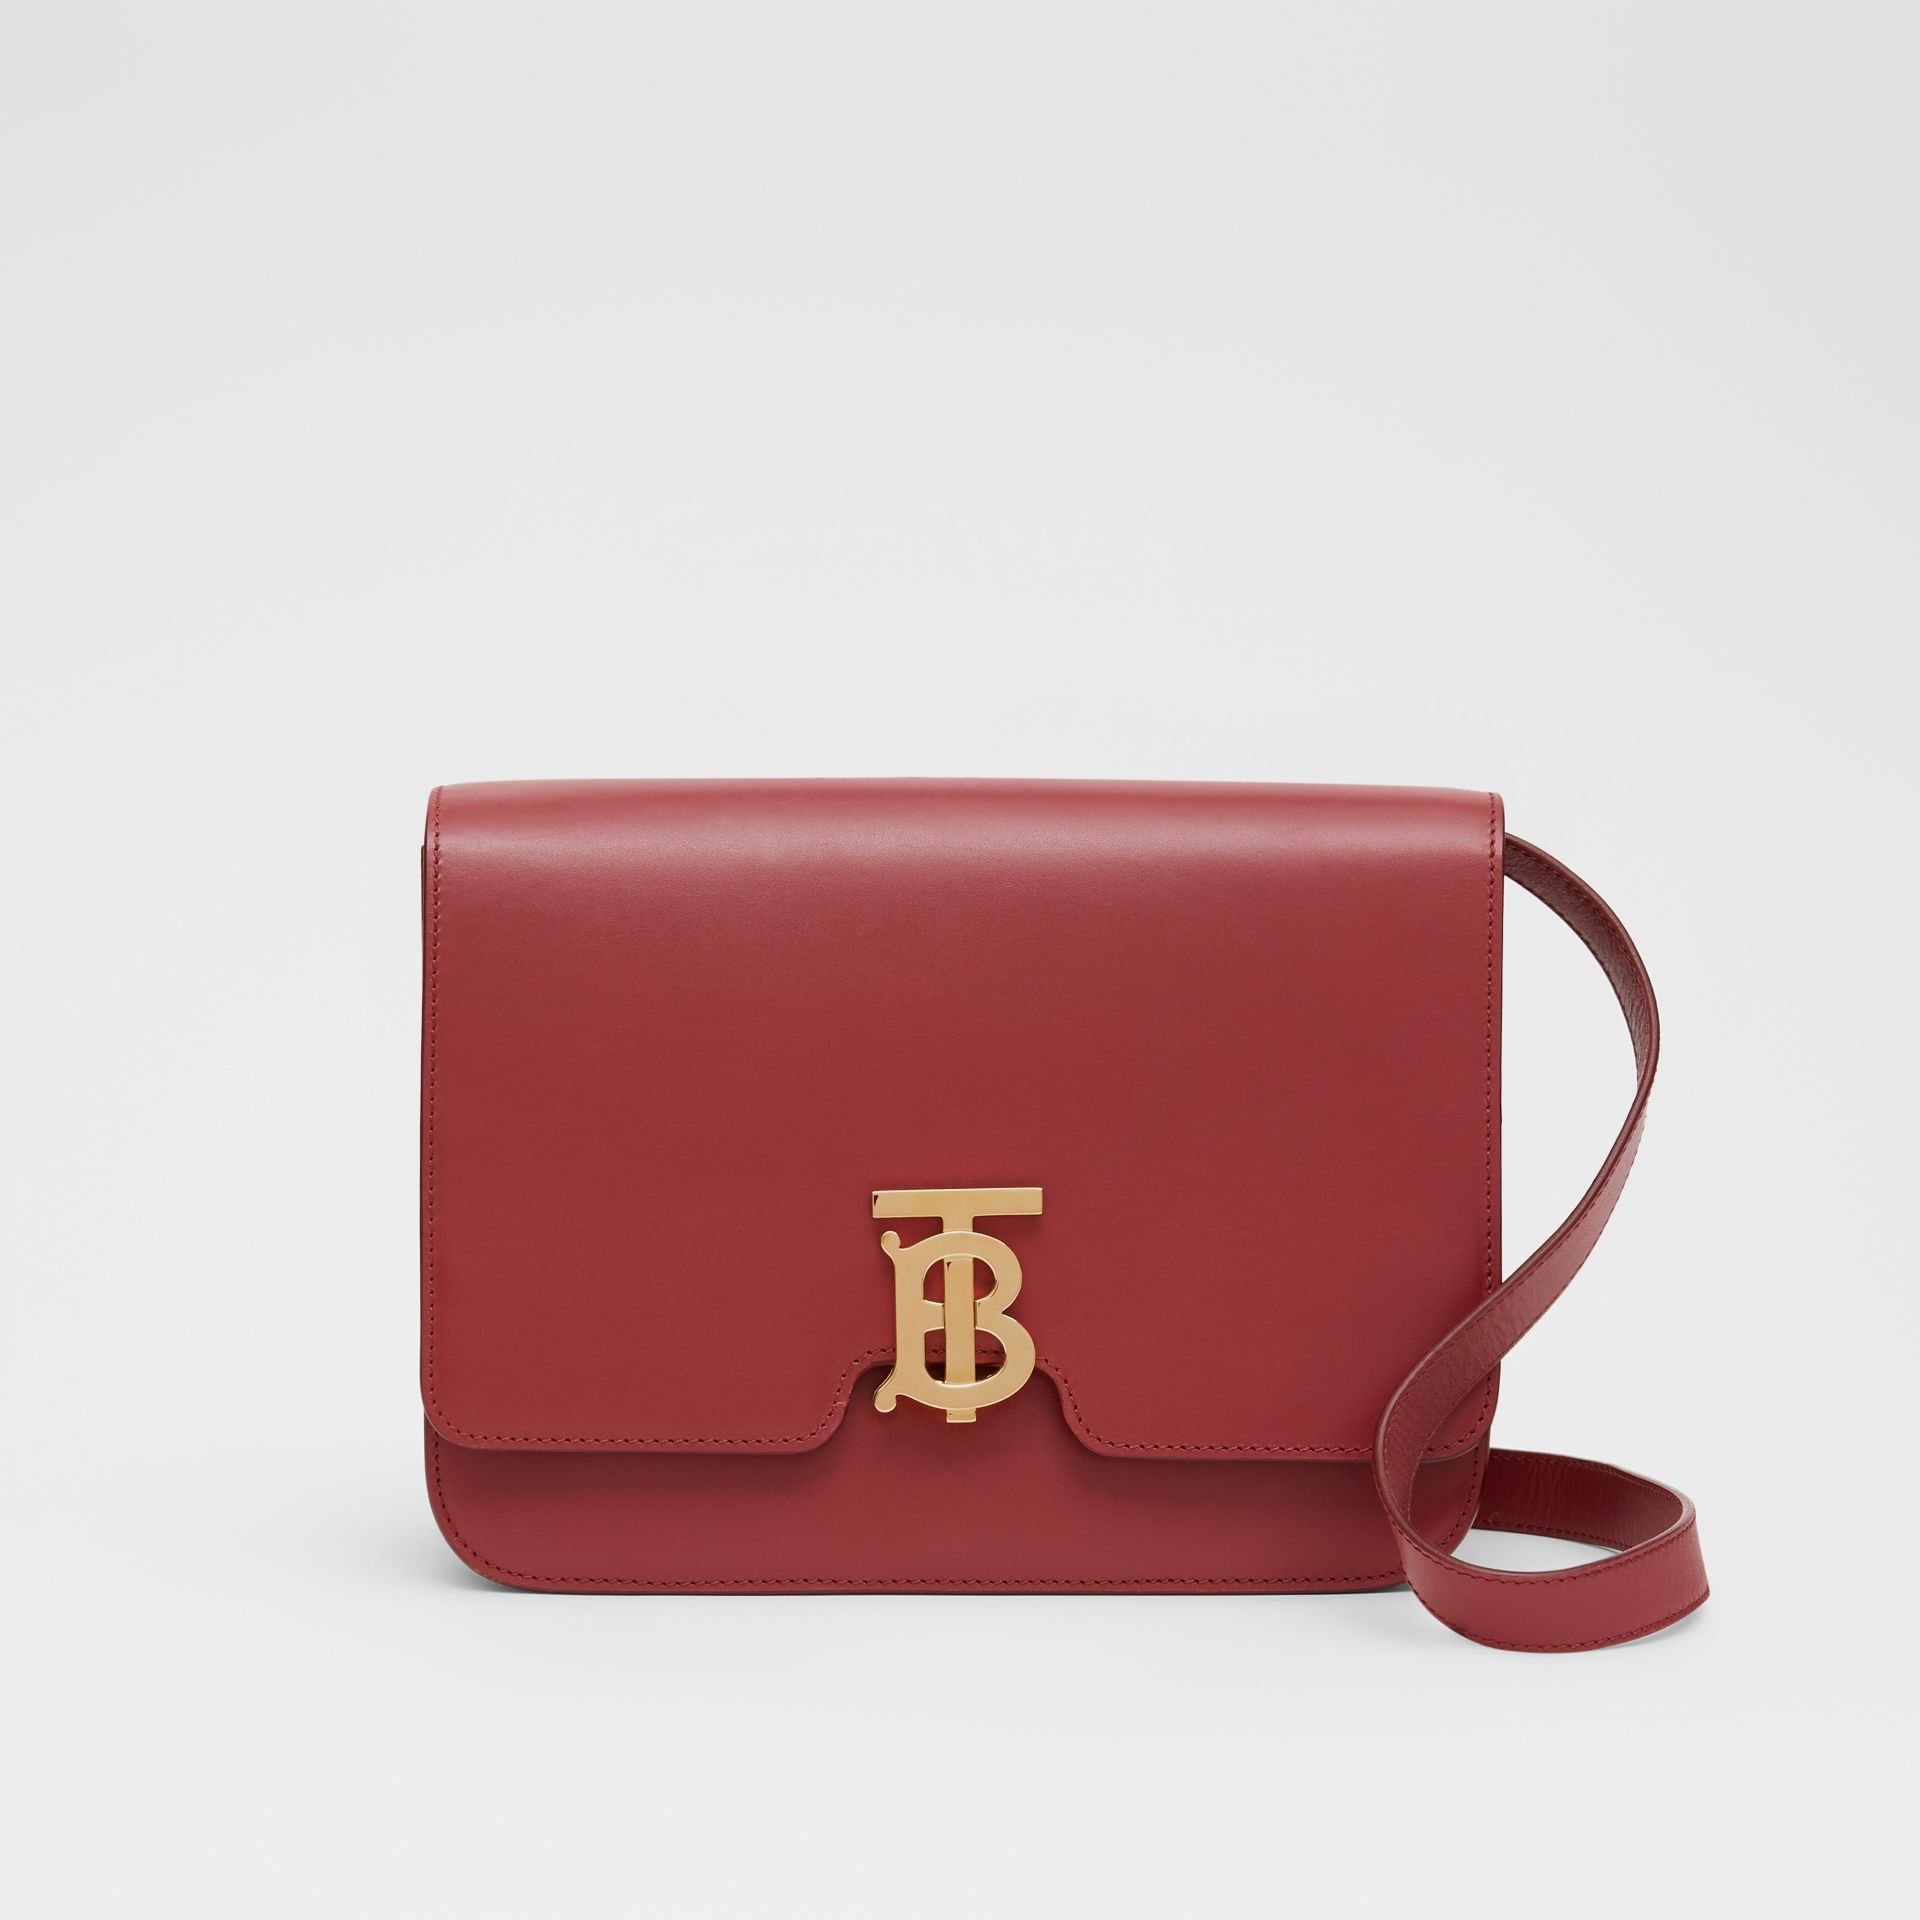 Medium Leather TB Bag in Crimson - Women | Burberry United Kingdom - gallery image 0